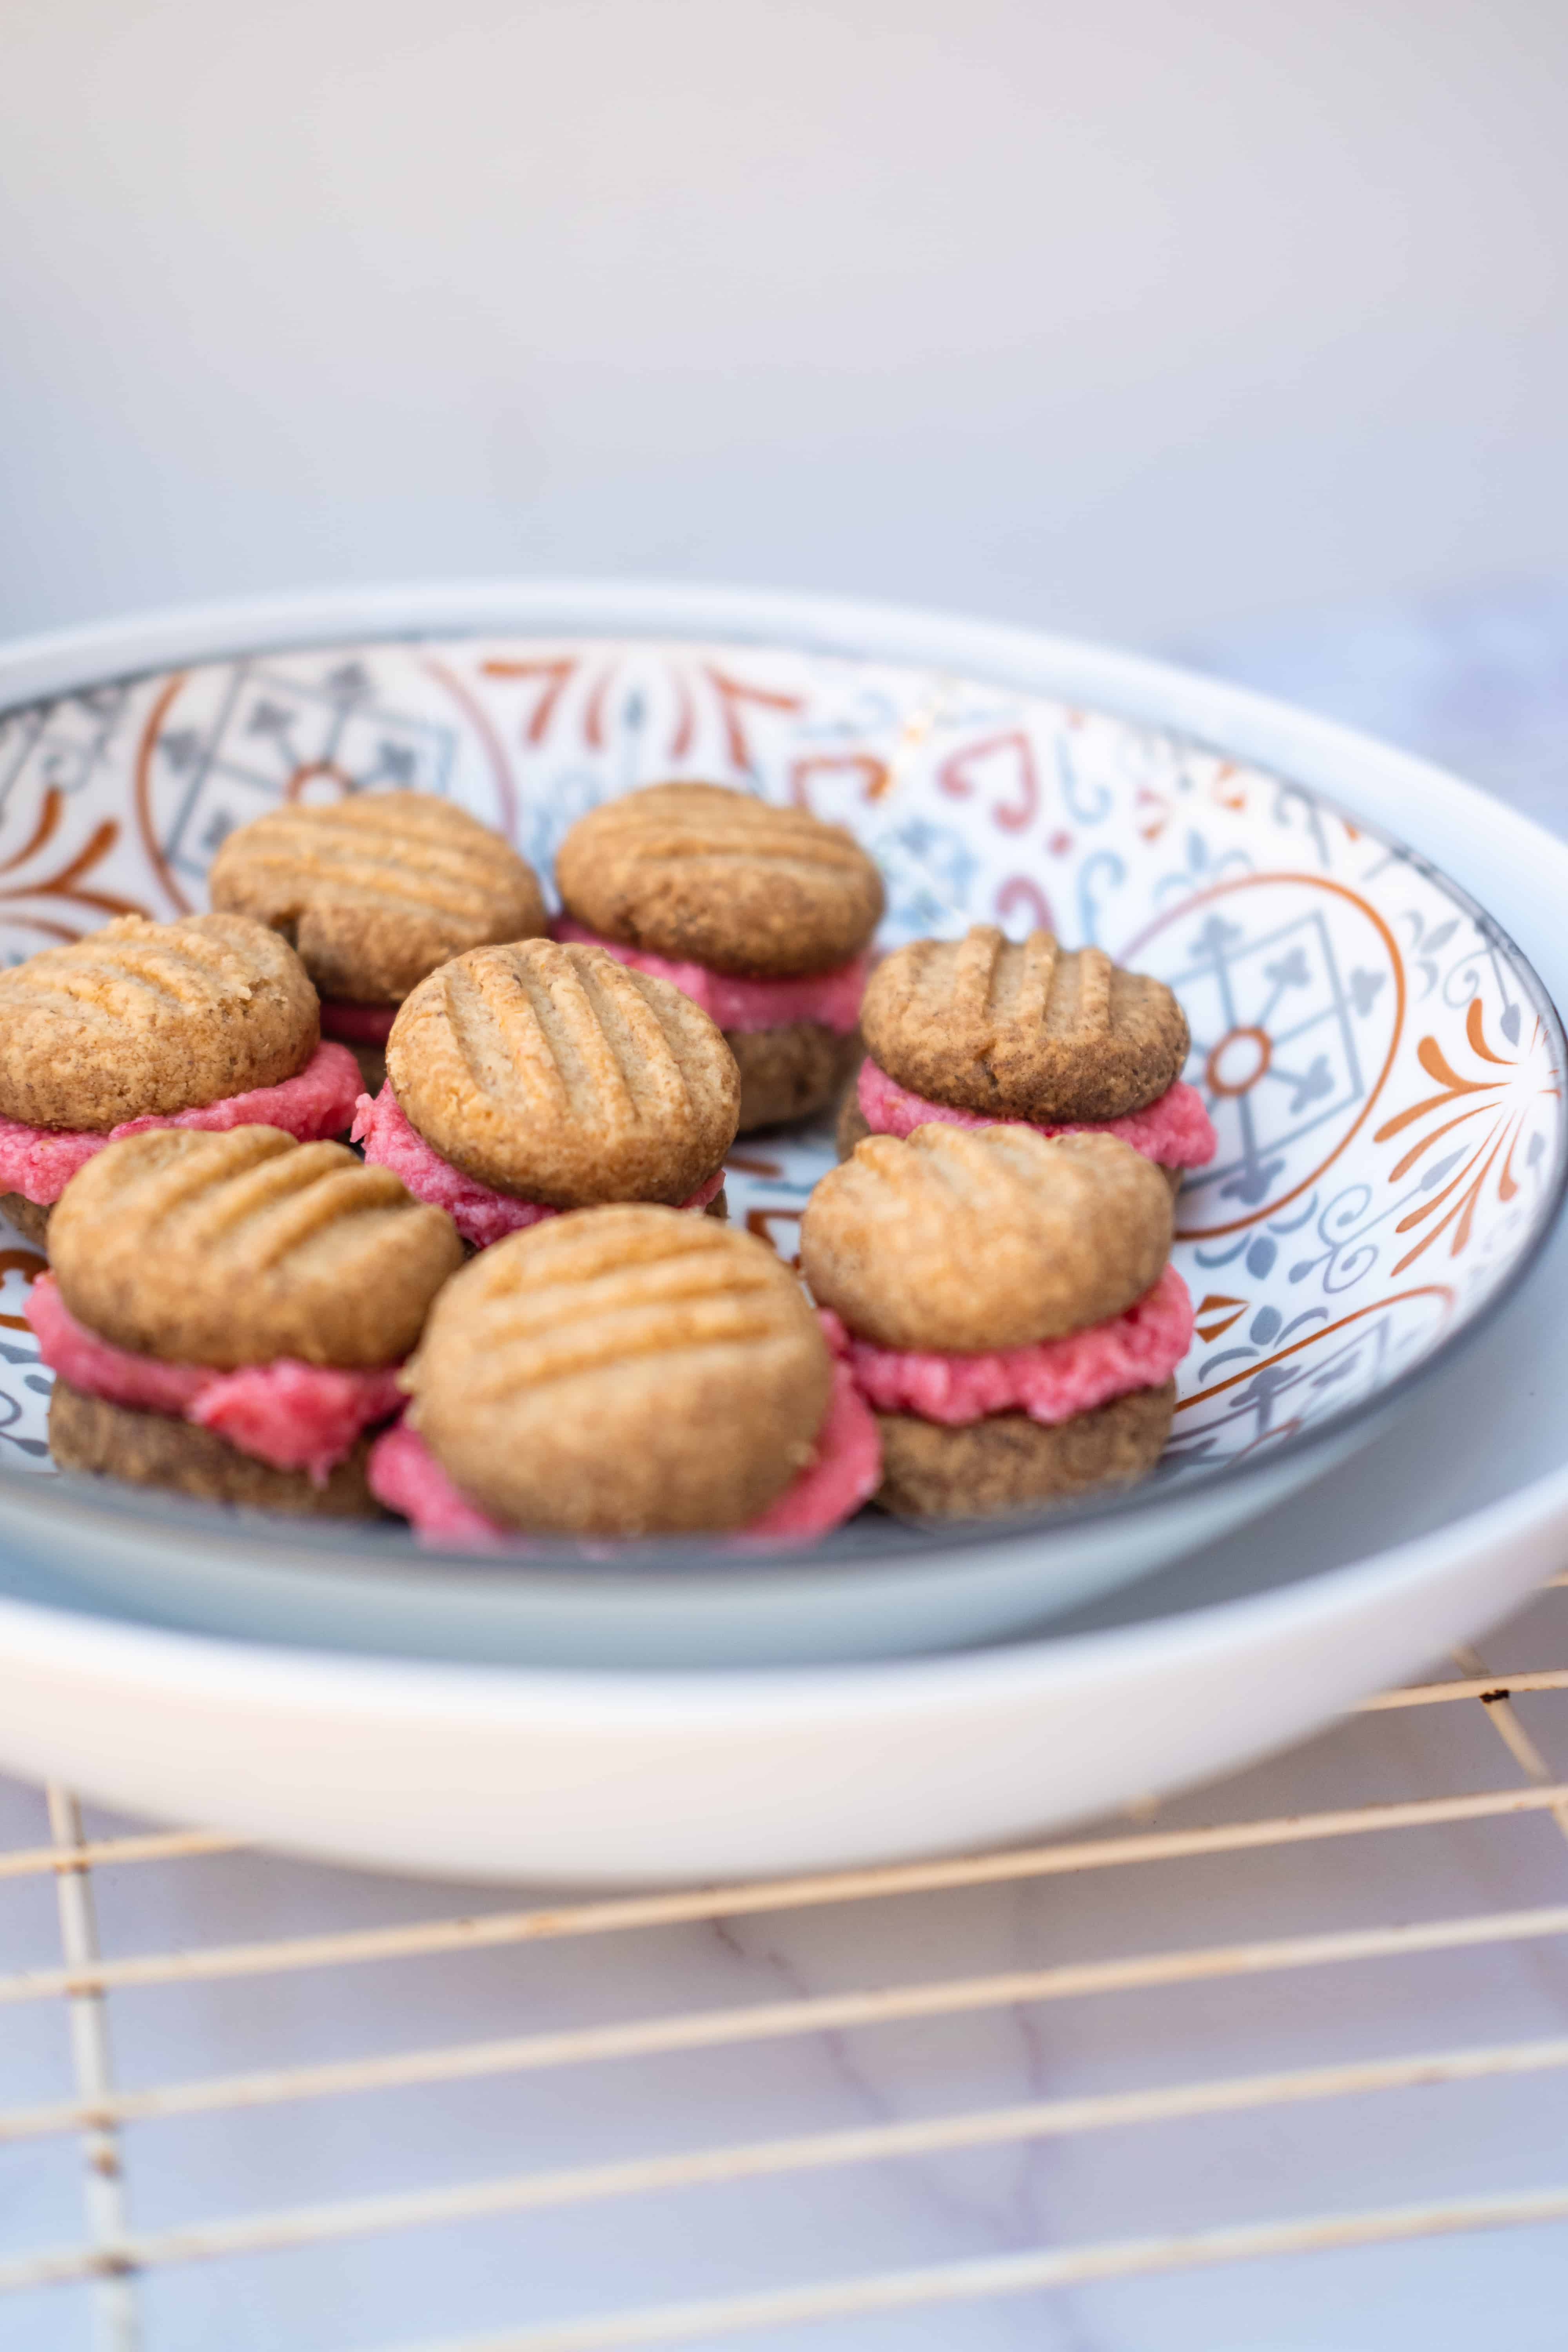 Gluten-Free Melting Moments with Raspberry Filling